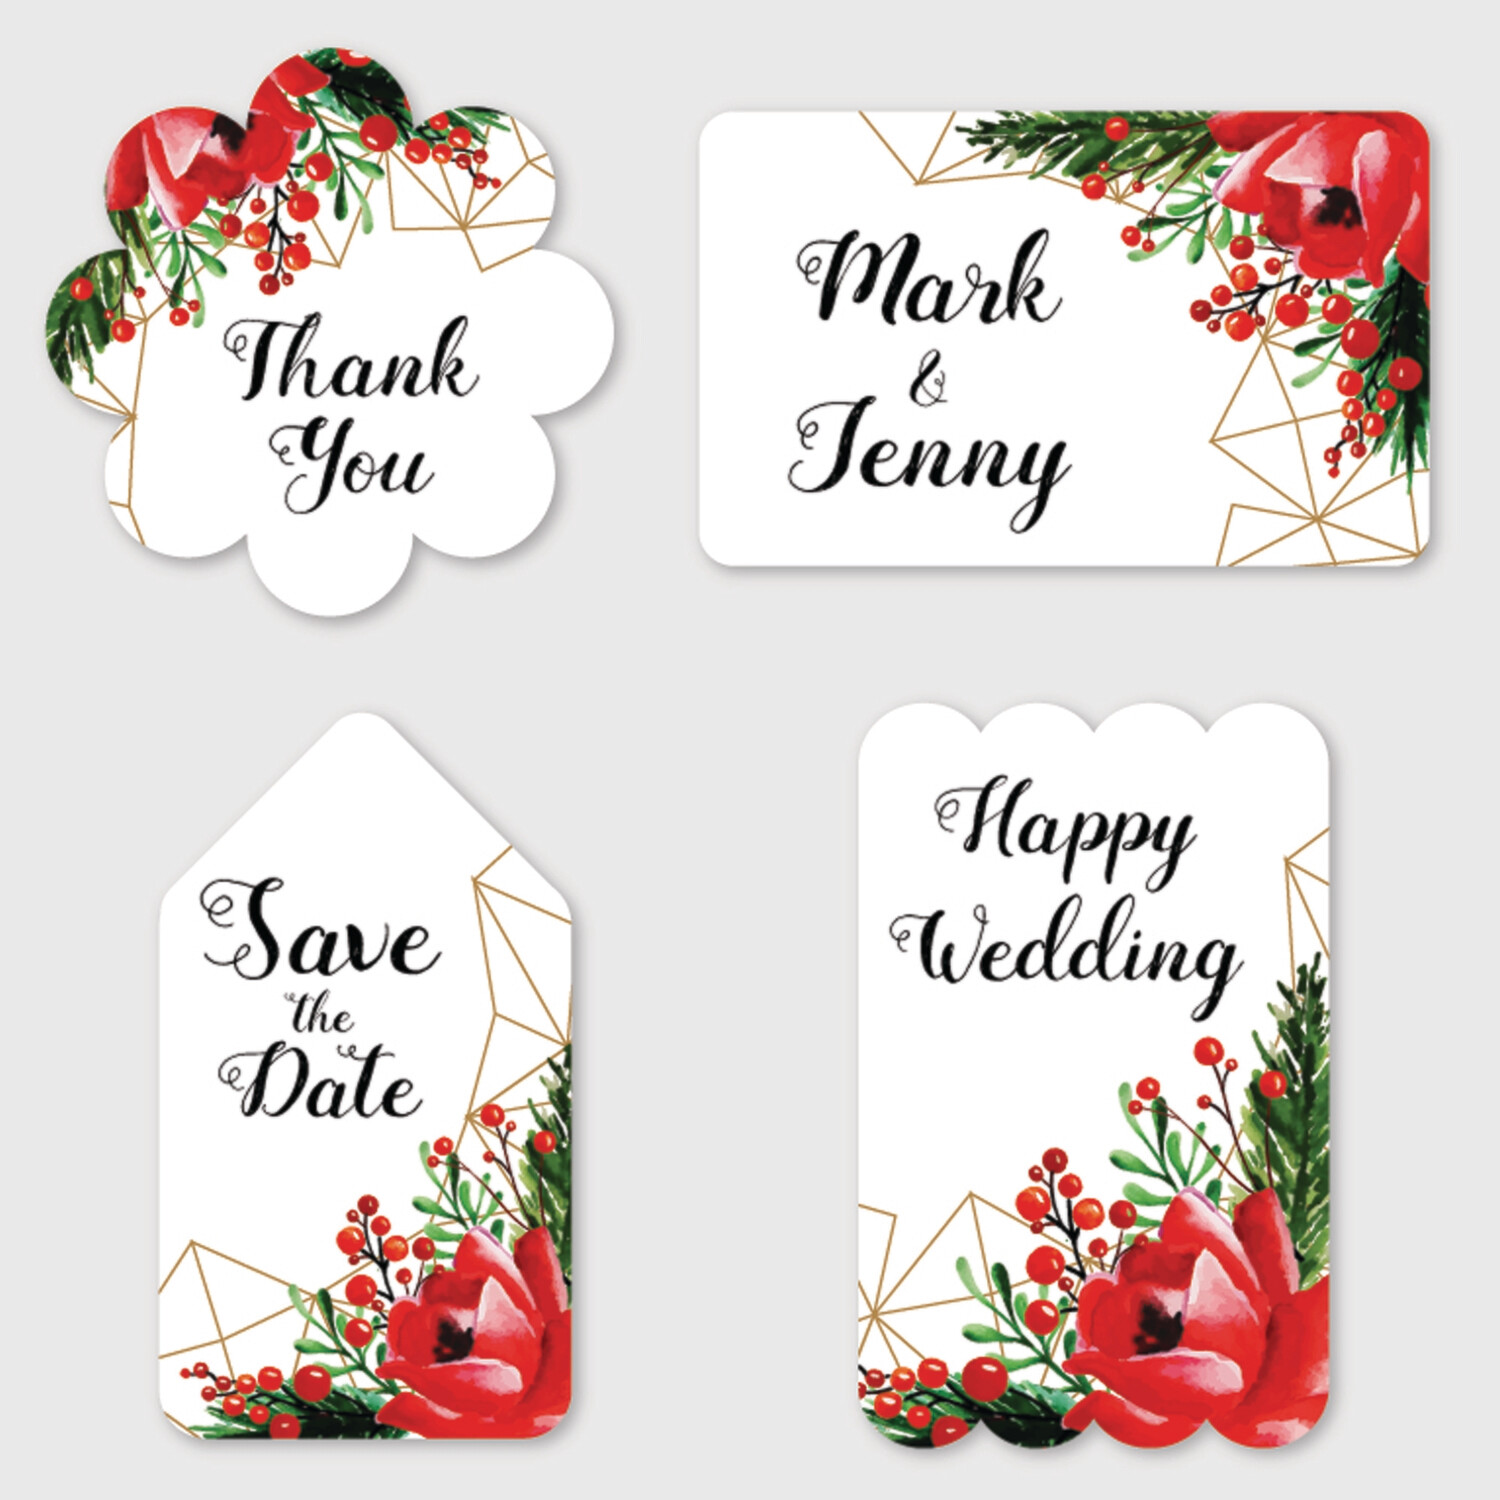 Digital Personalized Wedding Favor Stickers, Wedding Stickers, Stickers Favor for Wedding, Wedding Stickers for Favor, Personalized Stickers Wedding - Watercolor Floral Wedding Label Collection